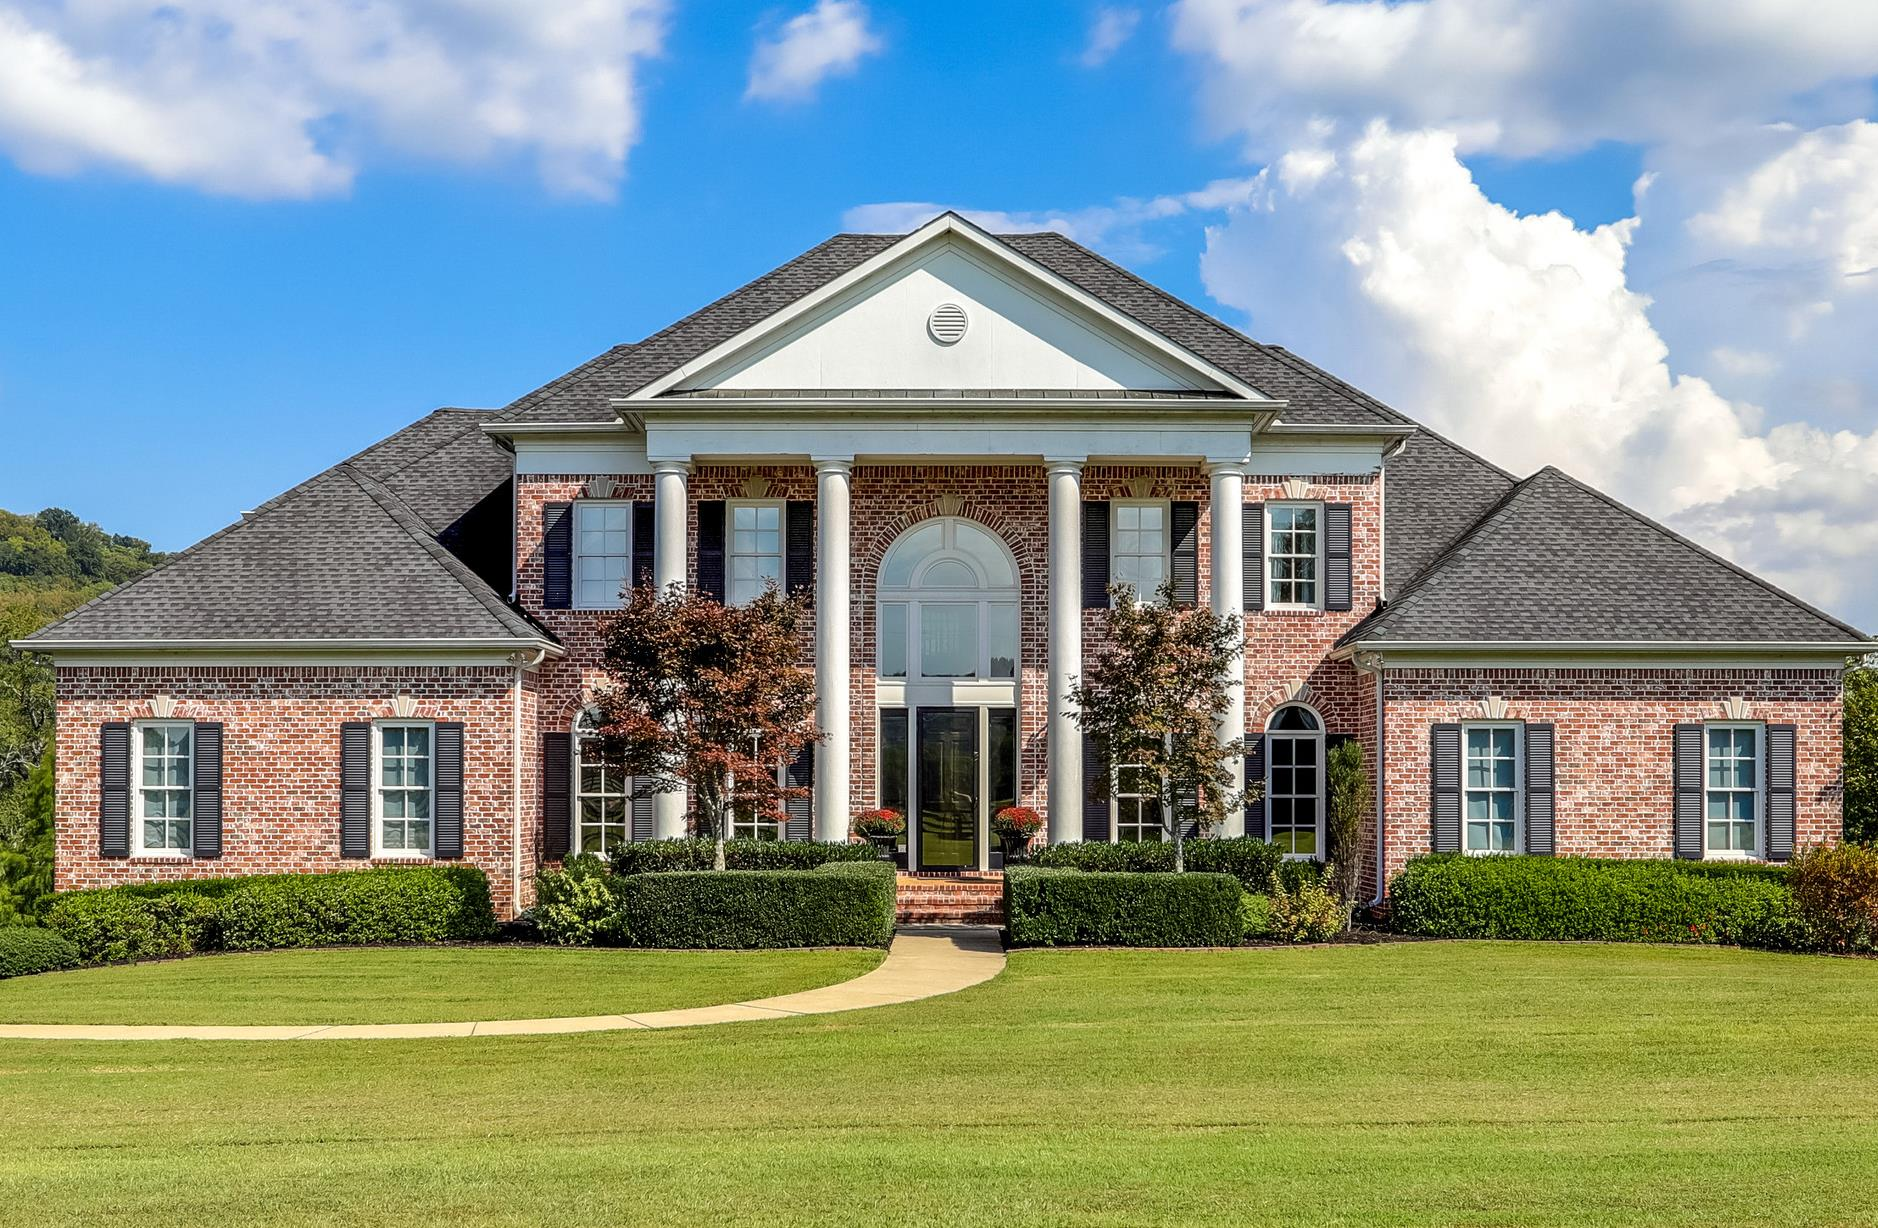 $2,549,900 - 5Br/6Ba -  for Sale in Brock Blake, Franklin